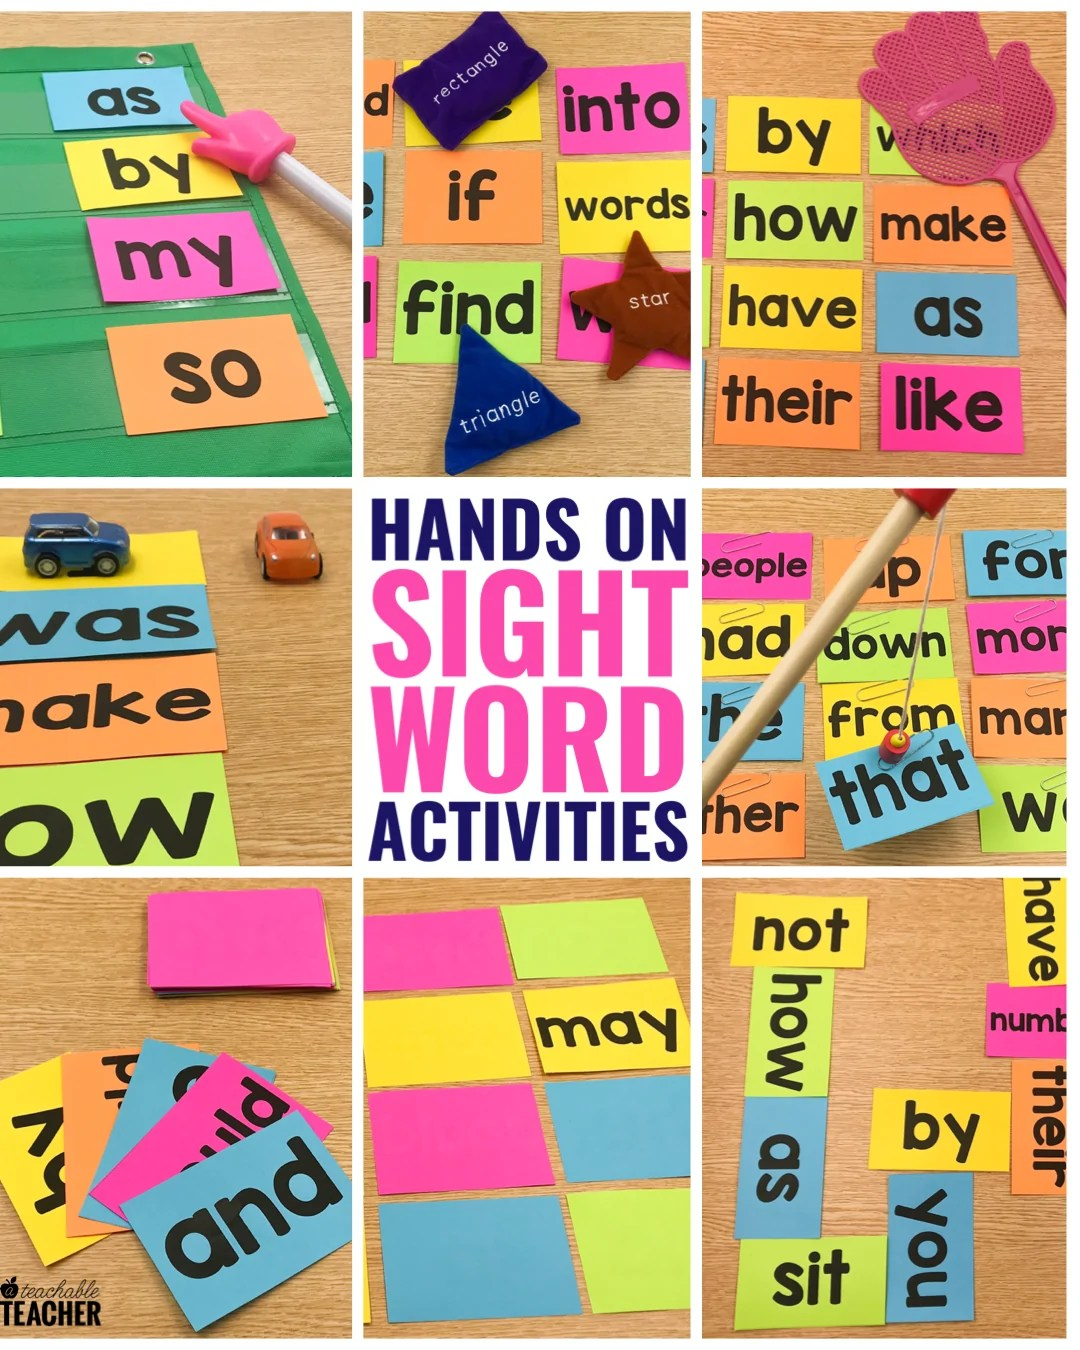 10 Hands On Sight Word Activities That Your Students Will